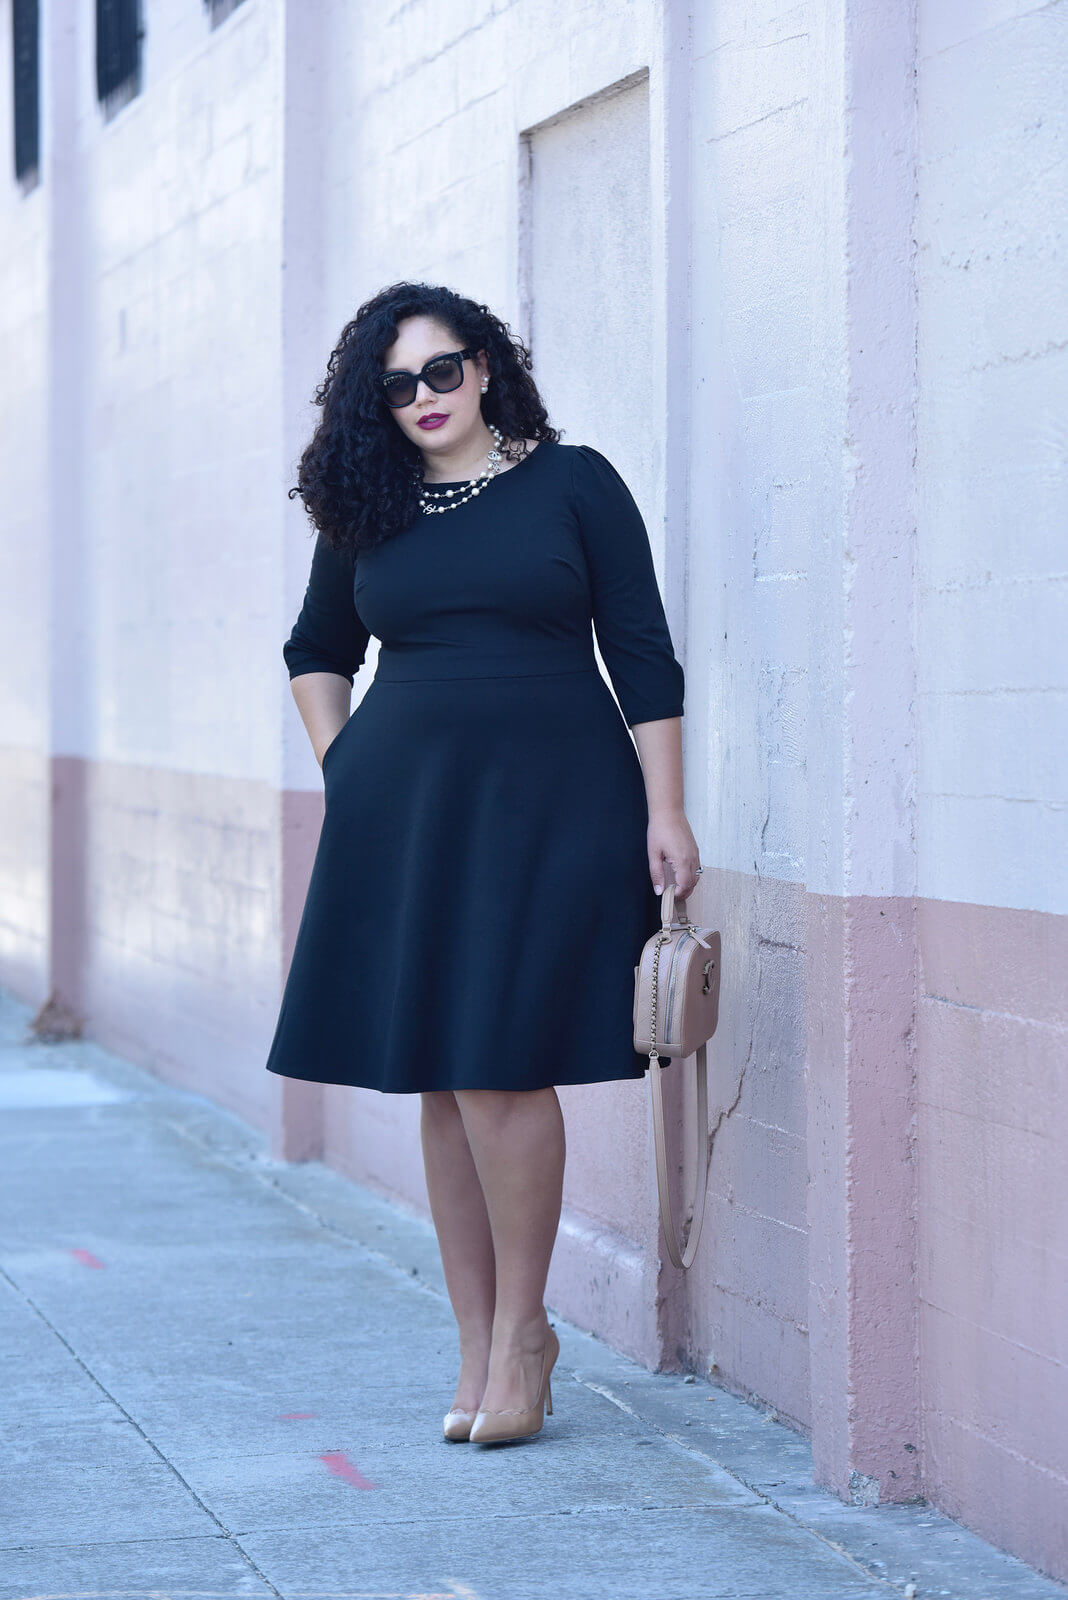 little black dress, fit and flare dress, black dress, black plus size dress, black midi dress, dress with pockets chanel bag, chanel necklace, celine sunglasses, girl with curves collection at dia & co via @GirlWithCurves